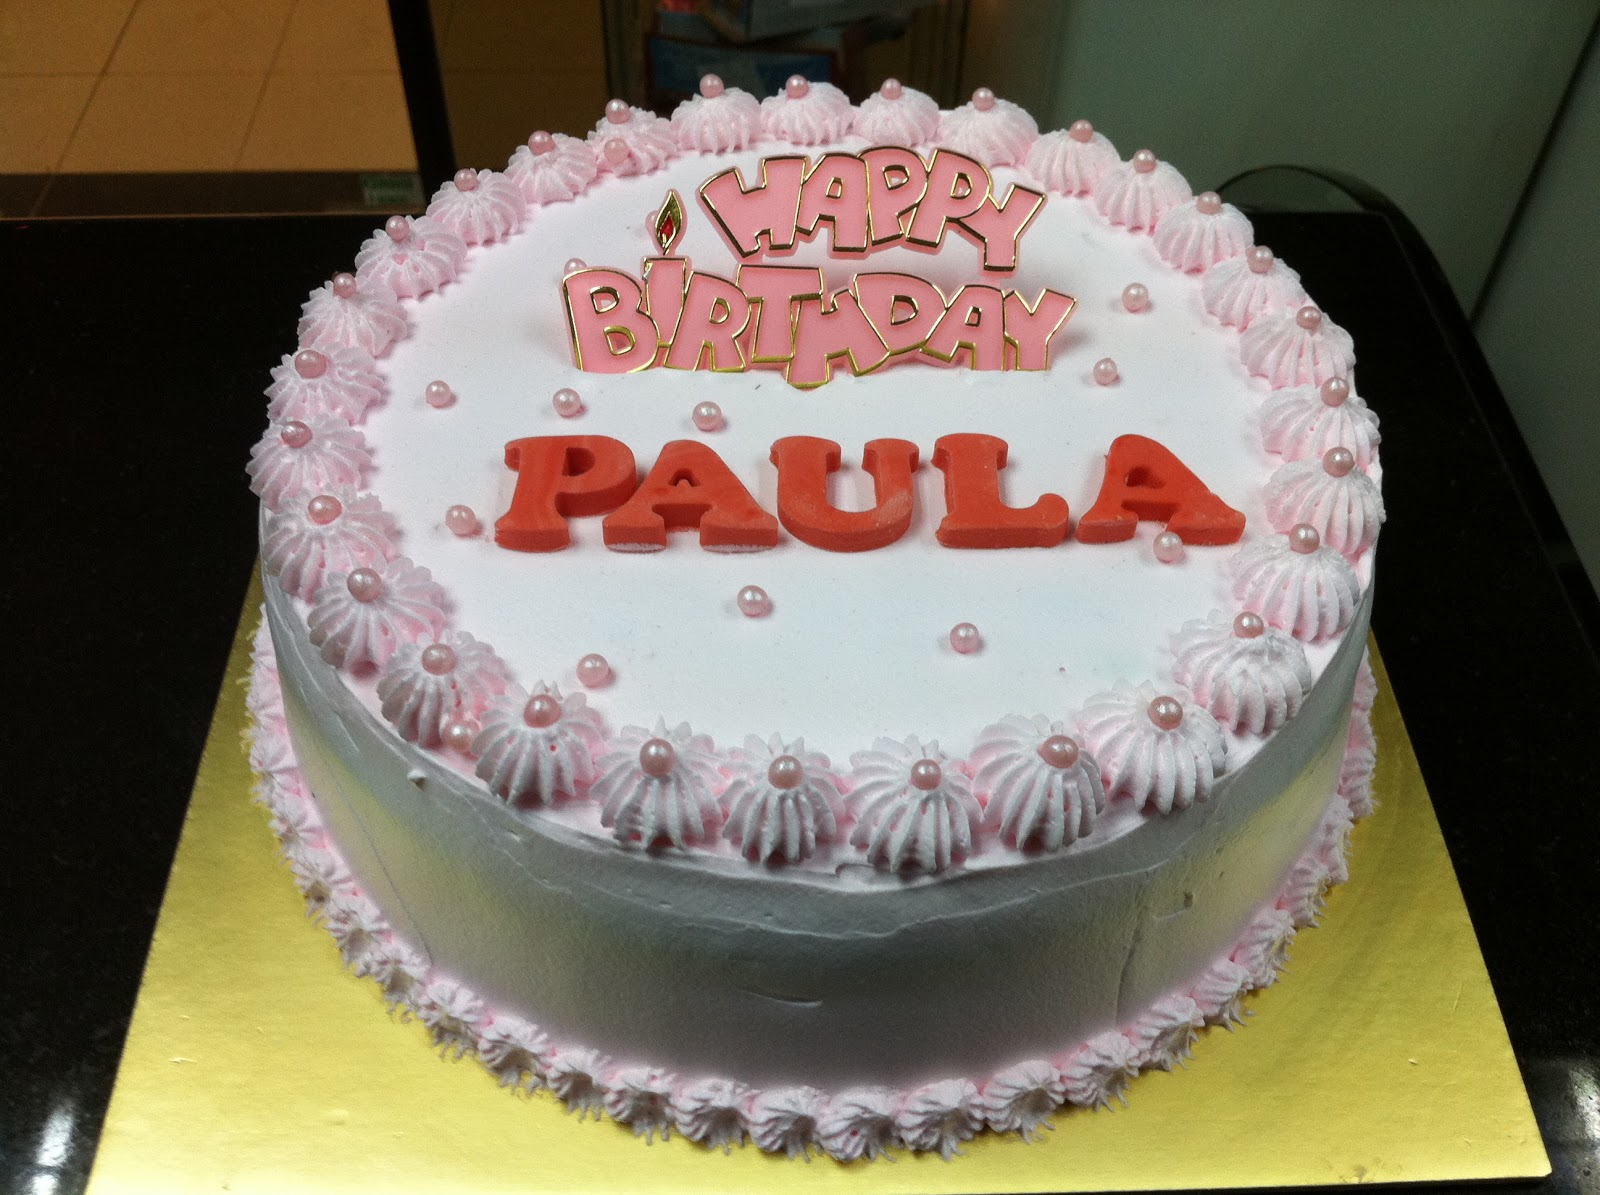 Cake Images With S : Haven Bakery: Paula Birthday cake